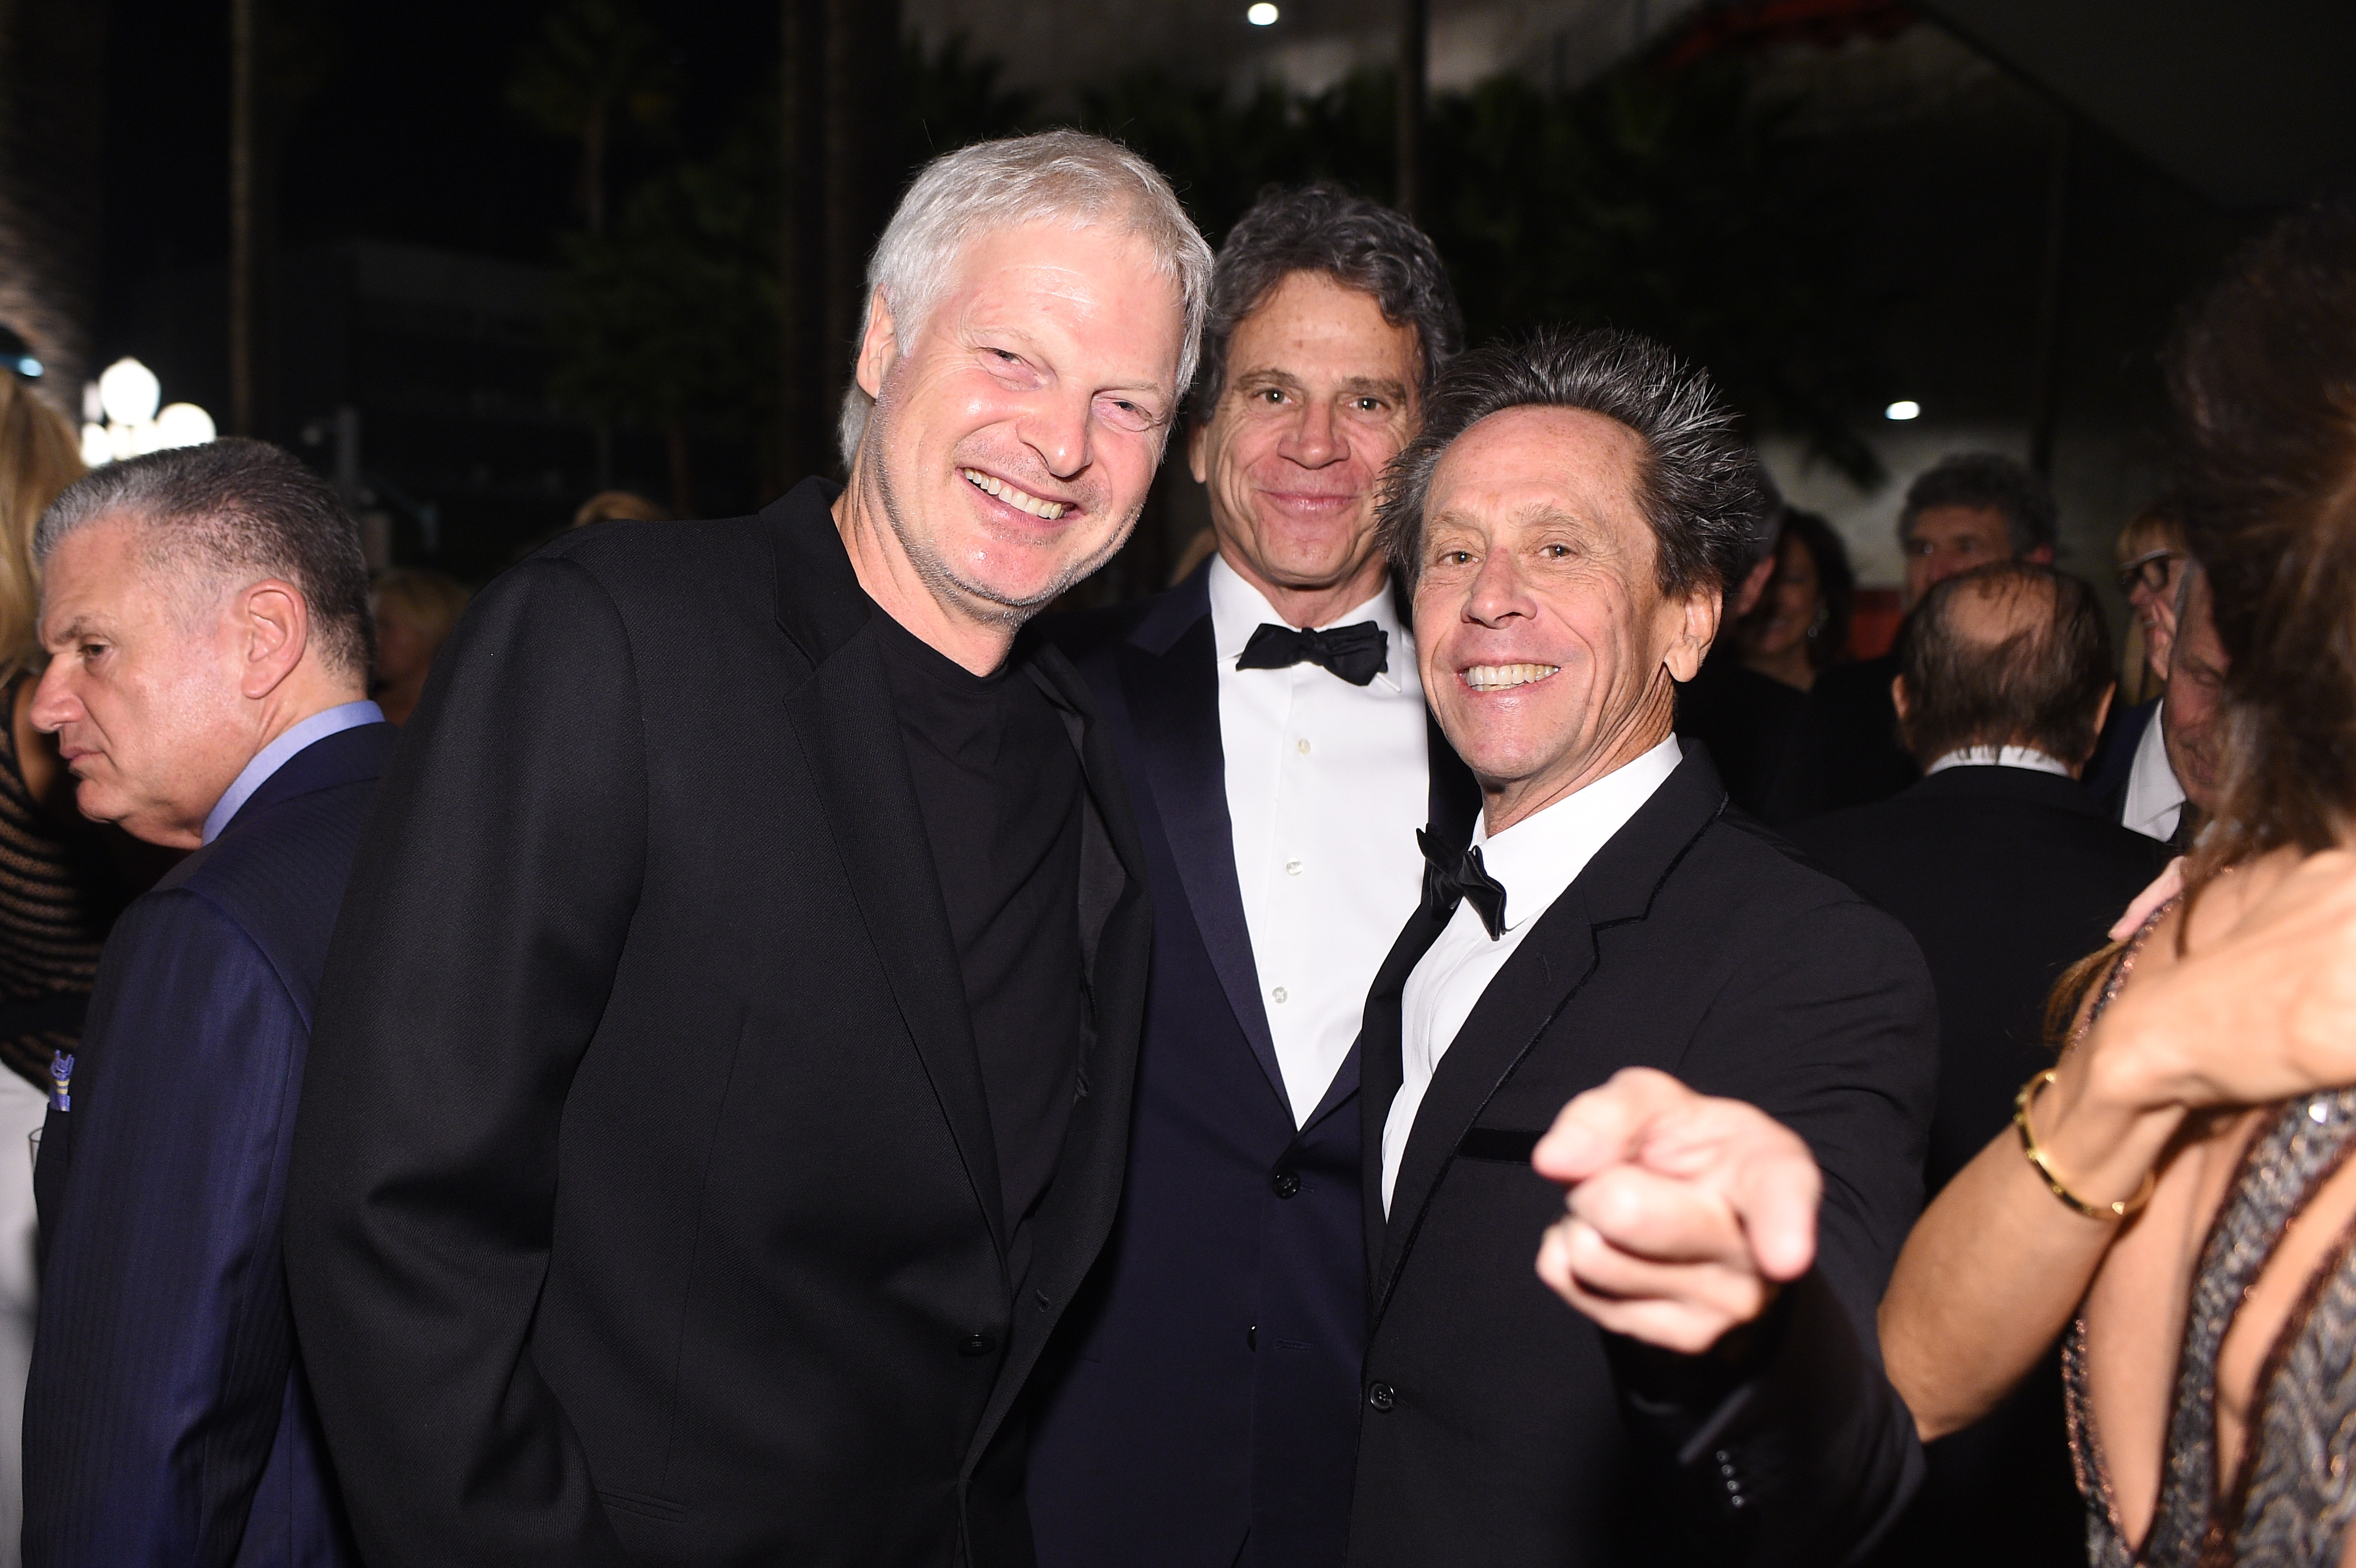 LOS ANGELES, CA - NOVEMBER 07:  (L-R) Producer Steve Bing, guest and LACMA Trustee Brian Grazer attend LACMA 2015 Art+Film Gala Honoring James Turrell and Alejandro G Iñárritu, Presented by Gucci at LACMA on November 7, 2015 in Los Angeles, California.  (Photo by Stefanie Keenan/Getty Images for LACMA)